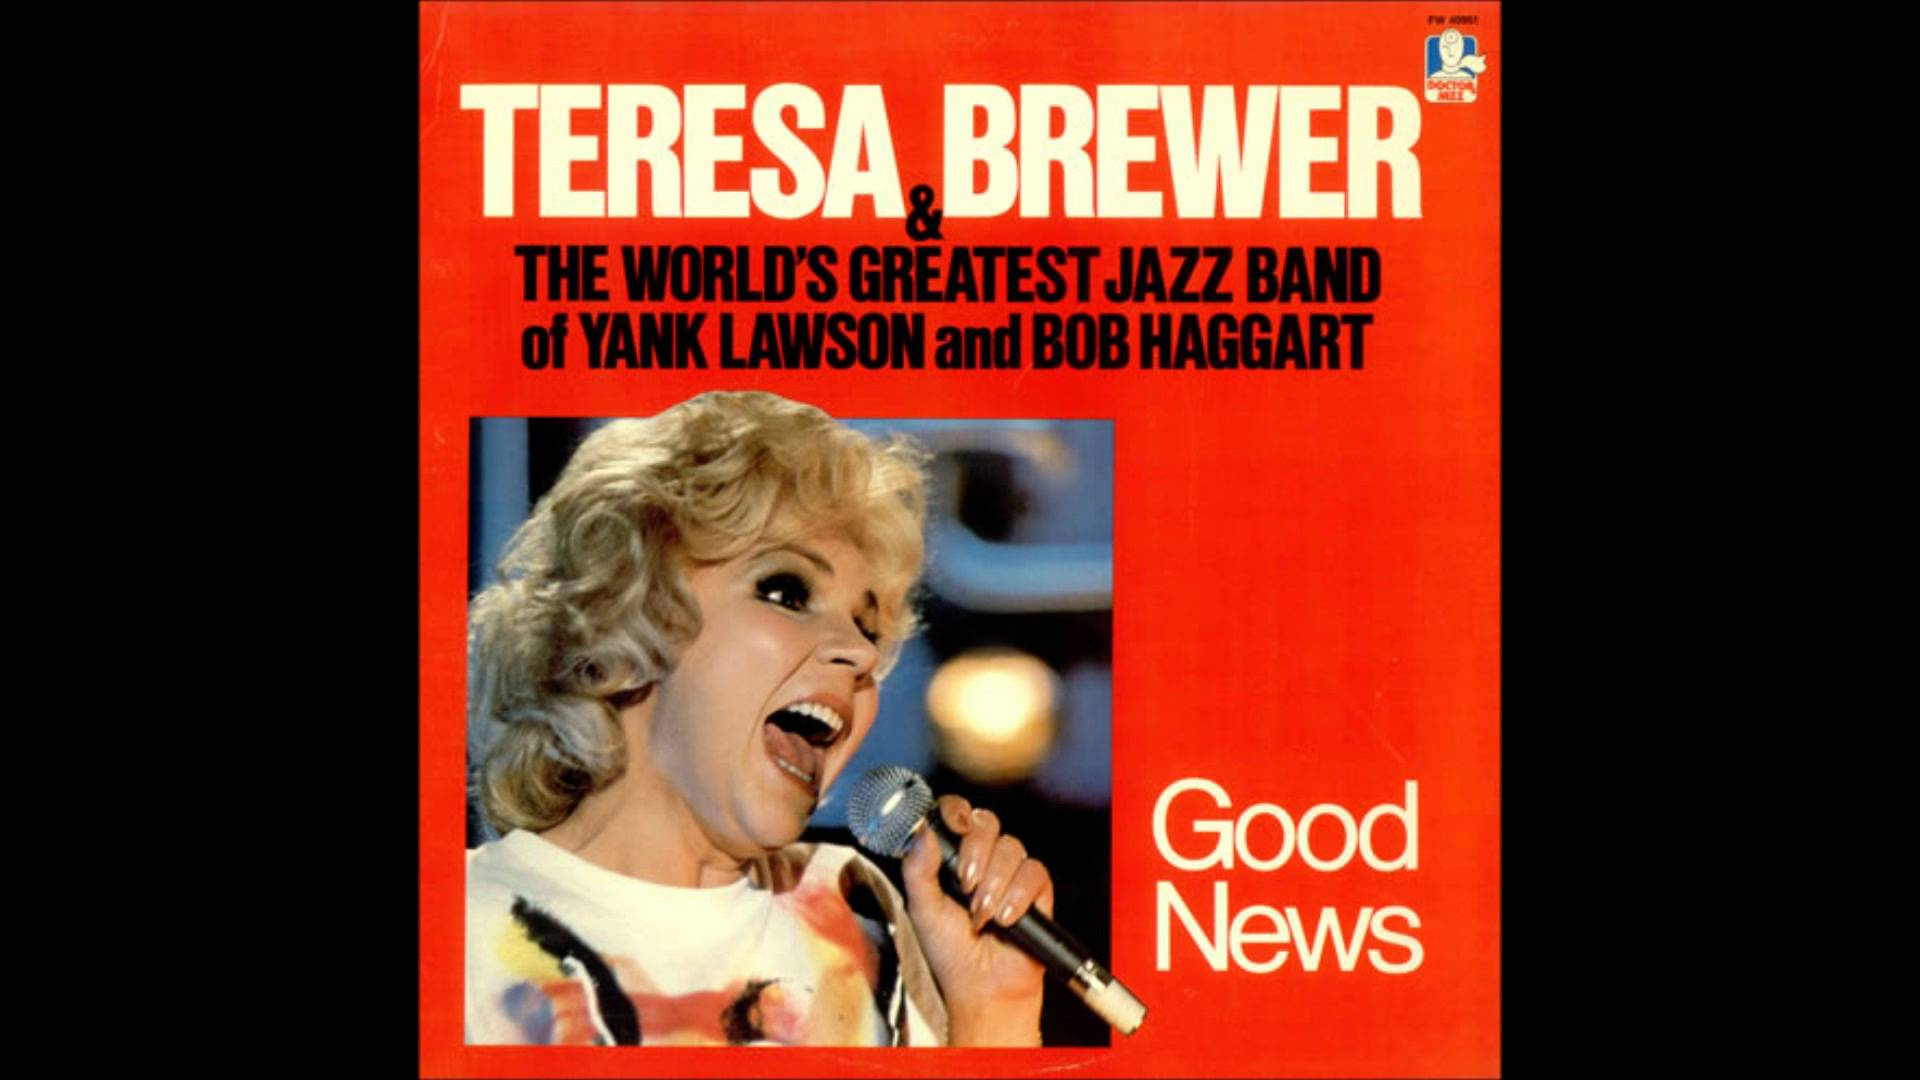 Teresa Brewer - Good News